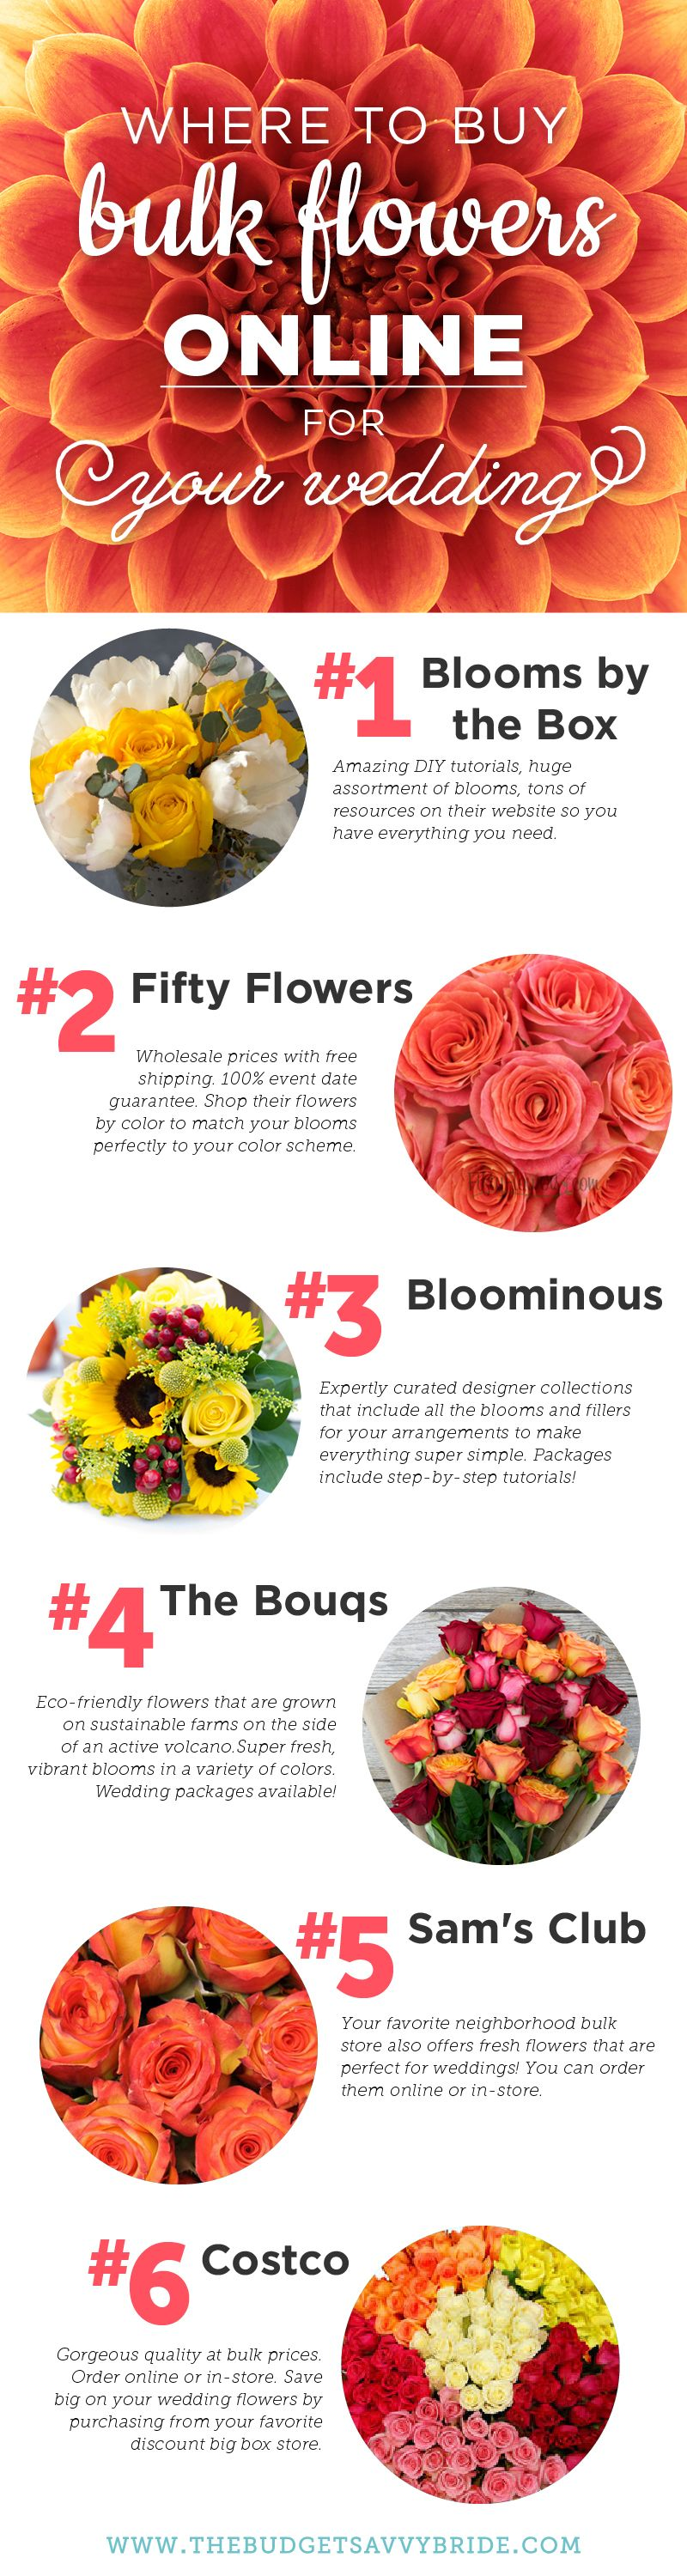 Where to Buy Bulk Flowers Online for Your Wedding Flower and